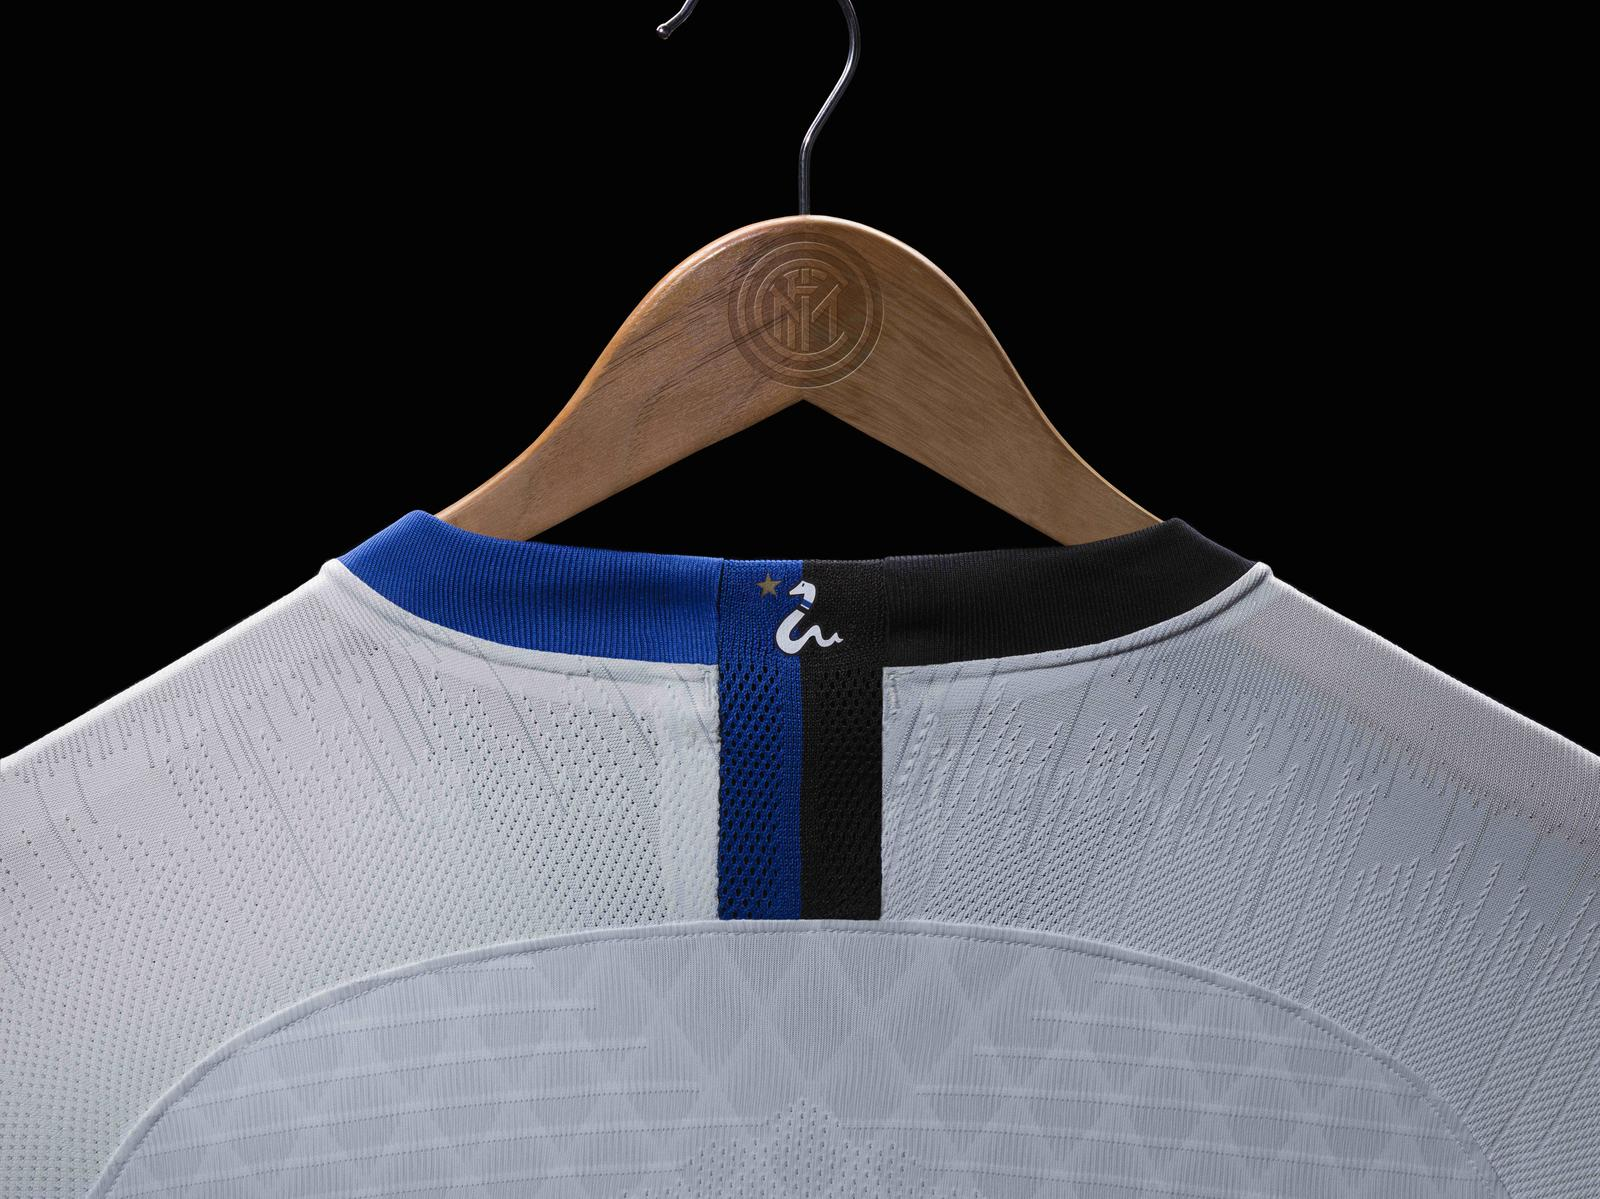 Away from Home, FC Internazionale Re-imagines Iconic Symbol 0